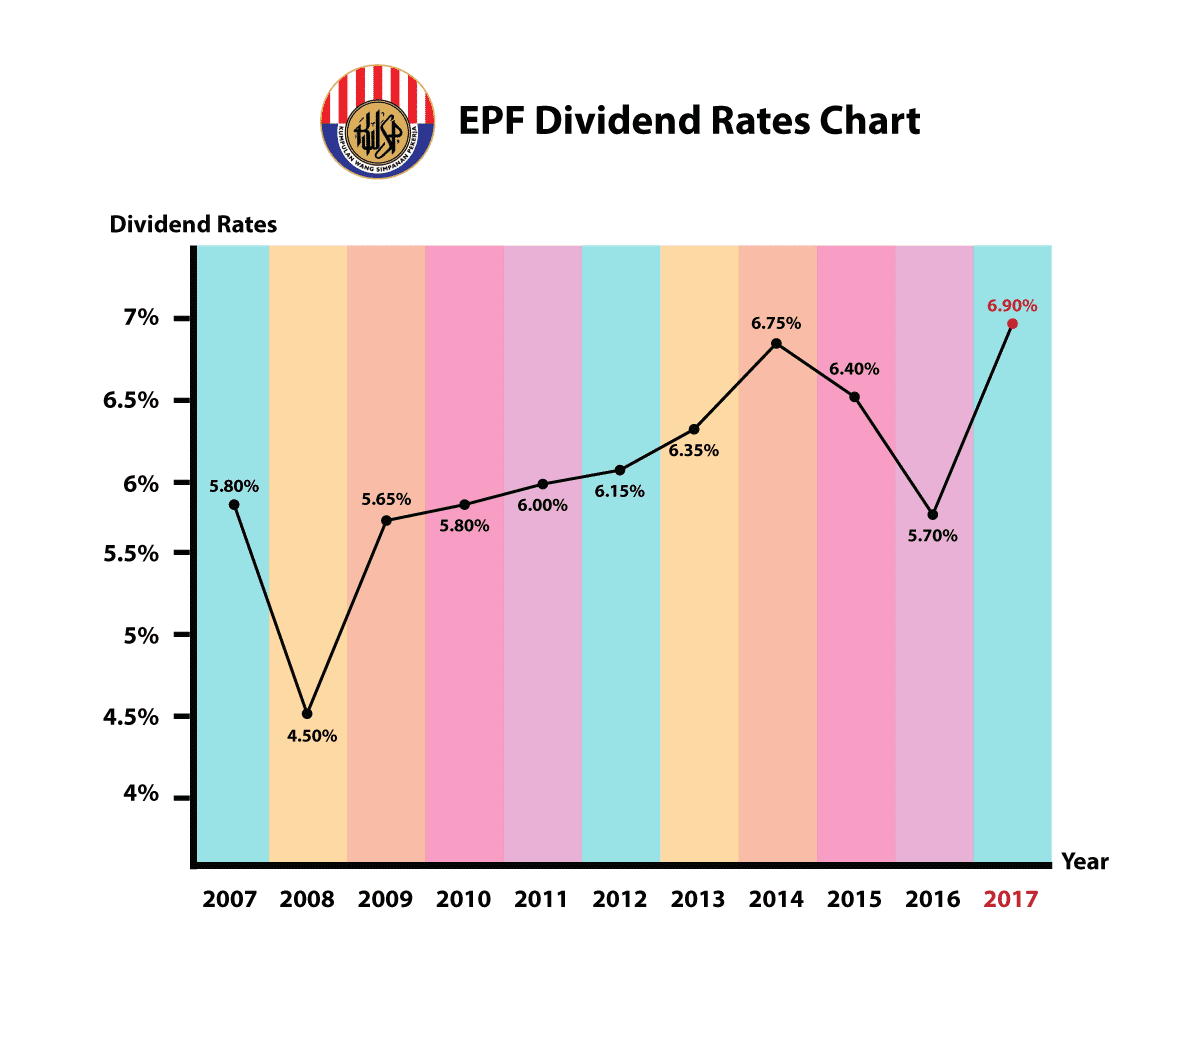 EPF 2017 Dividend - Everything That You Need To Know